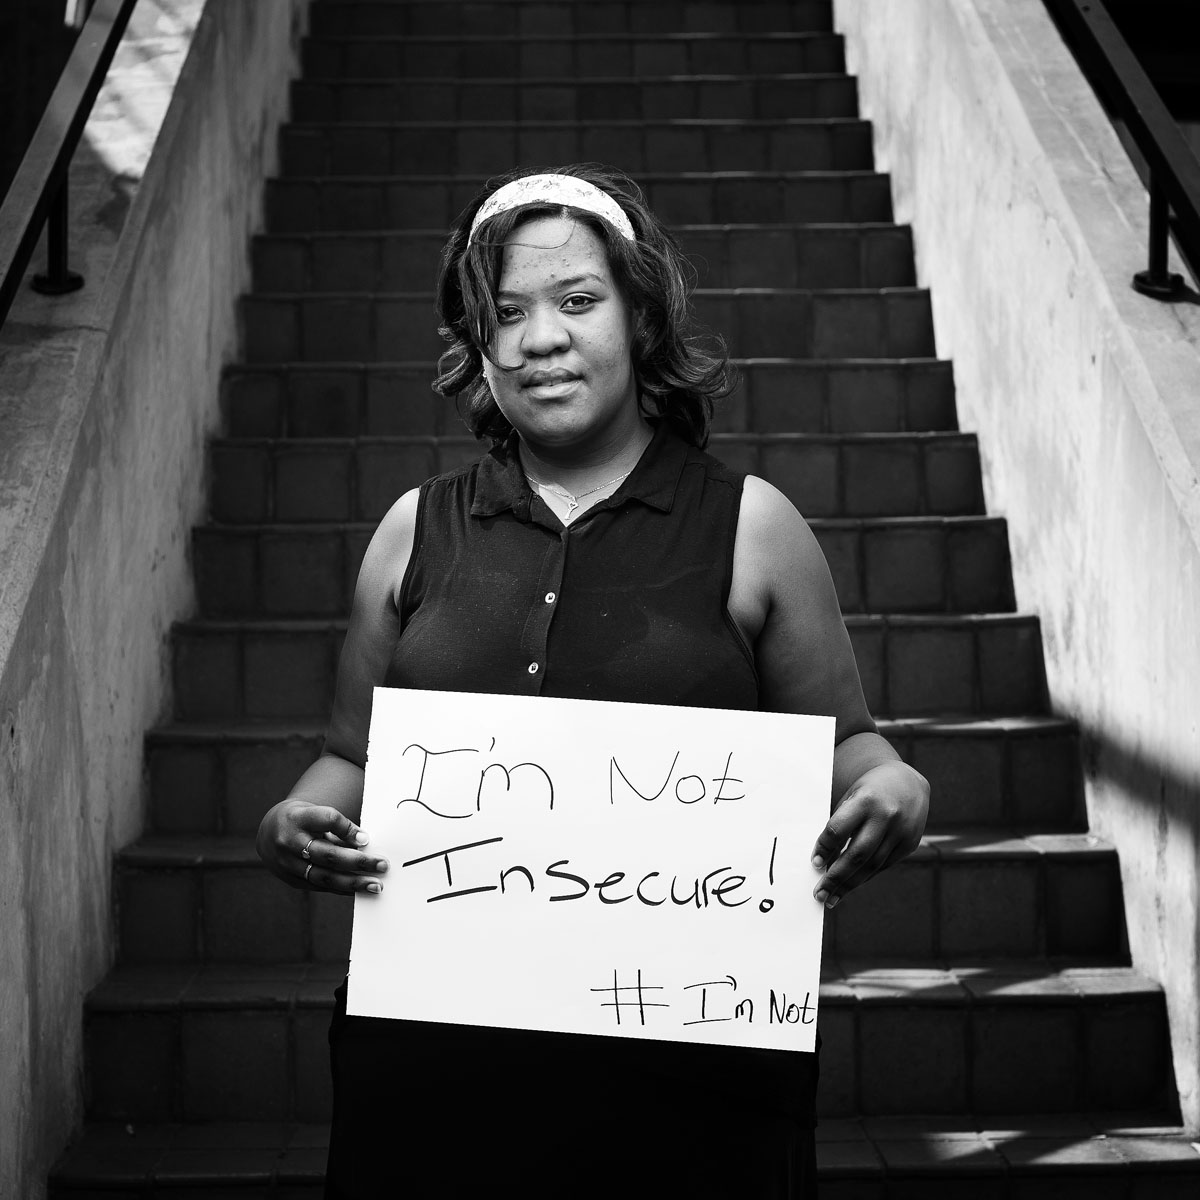 #Imnot insecure